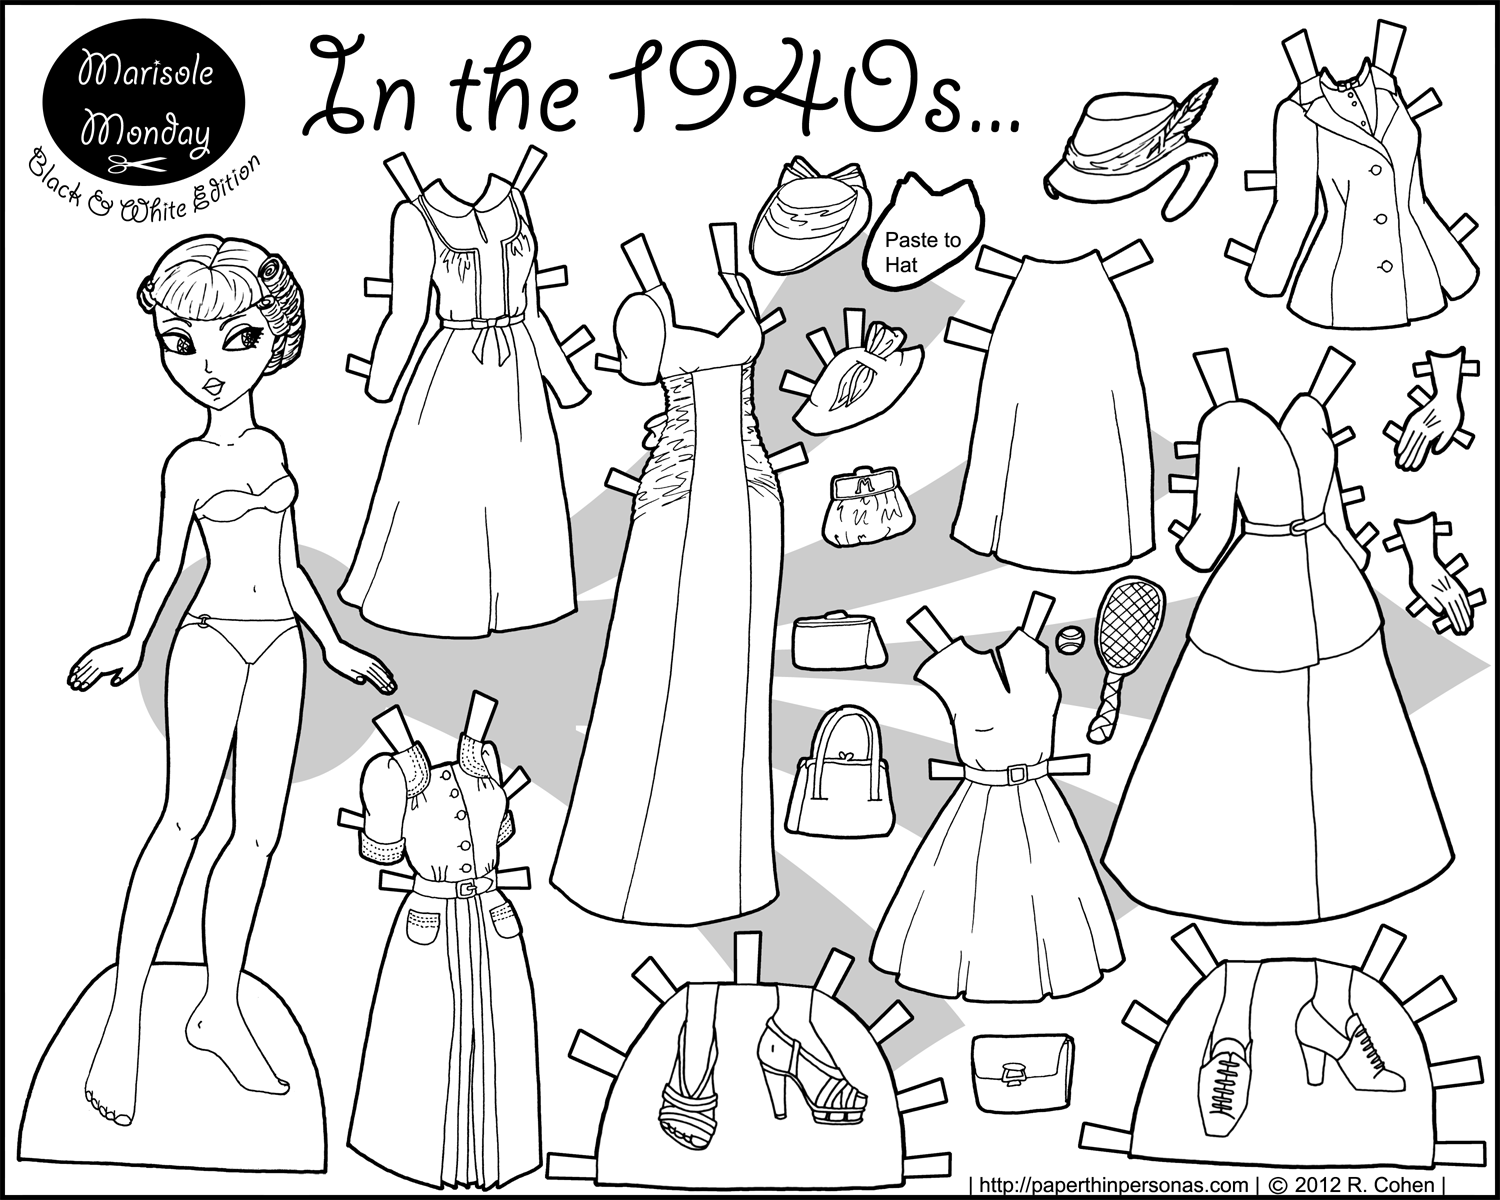 In the 1940s... Paper Doll Coloring Page • Paper Thin Personas